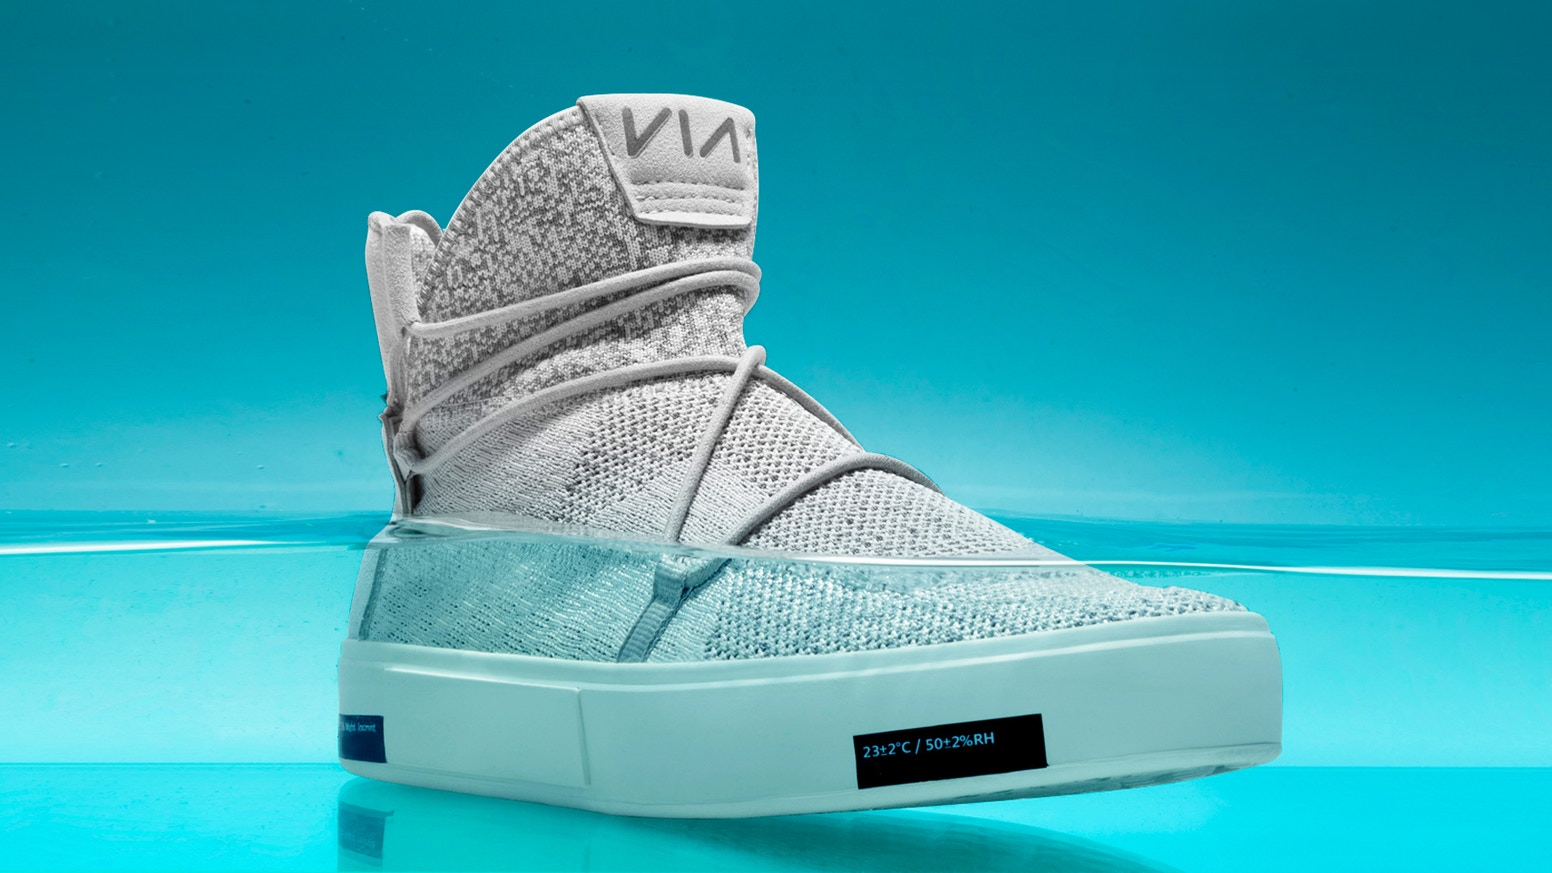 Eco-Friendly 100% Weatherproof and Breathable Knit Shoes - Made from Recycled Ocean Plastic.